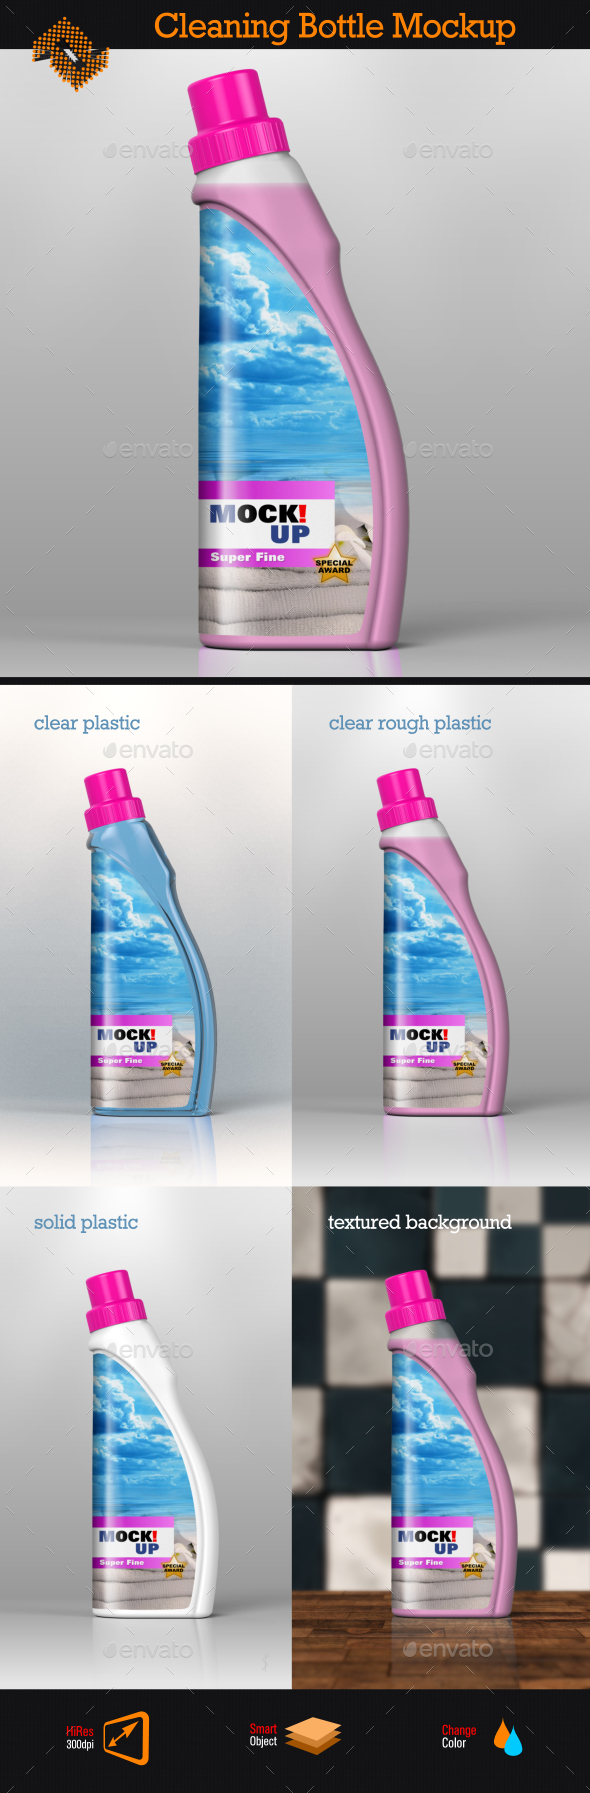 GraphicRiver Cleaning Bottle Mockup 8870701